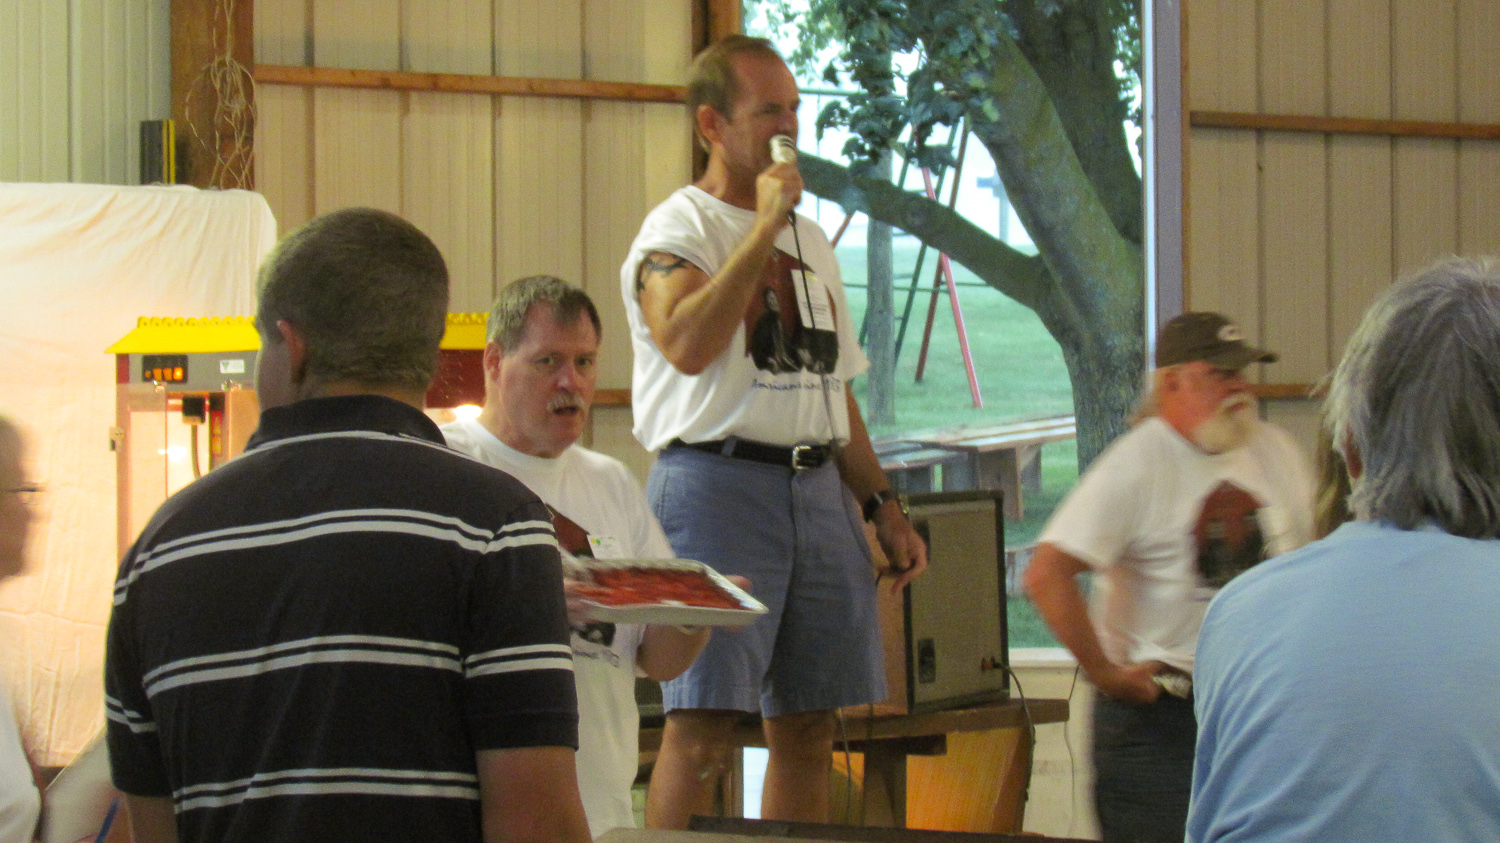 Russ - Our Auctioneer